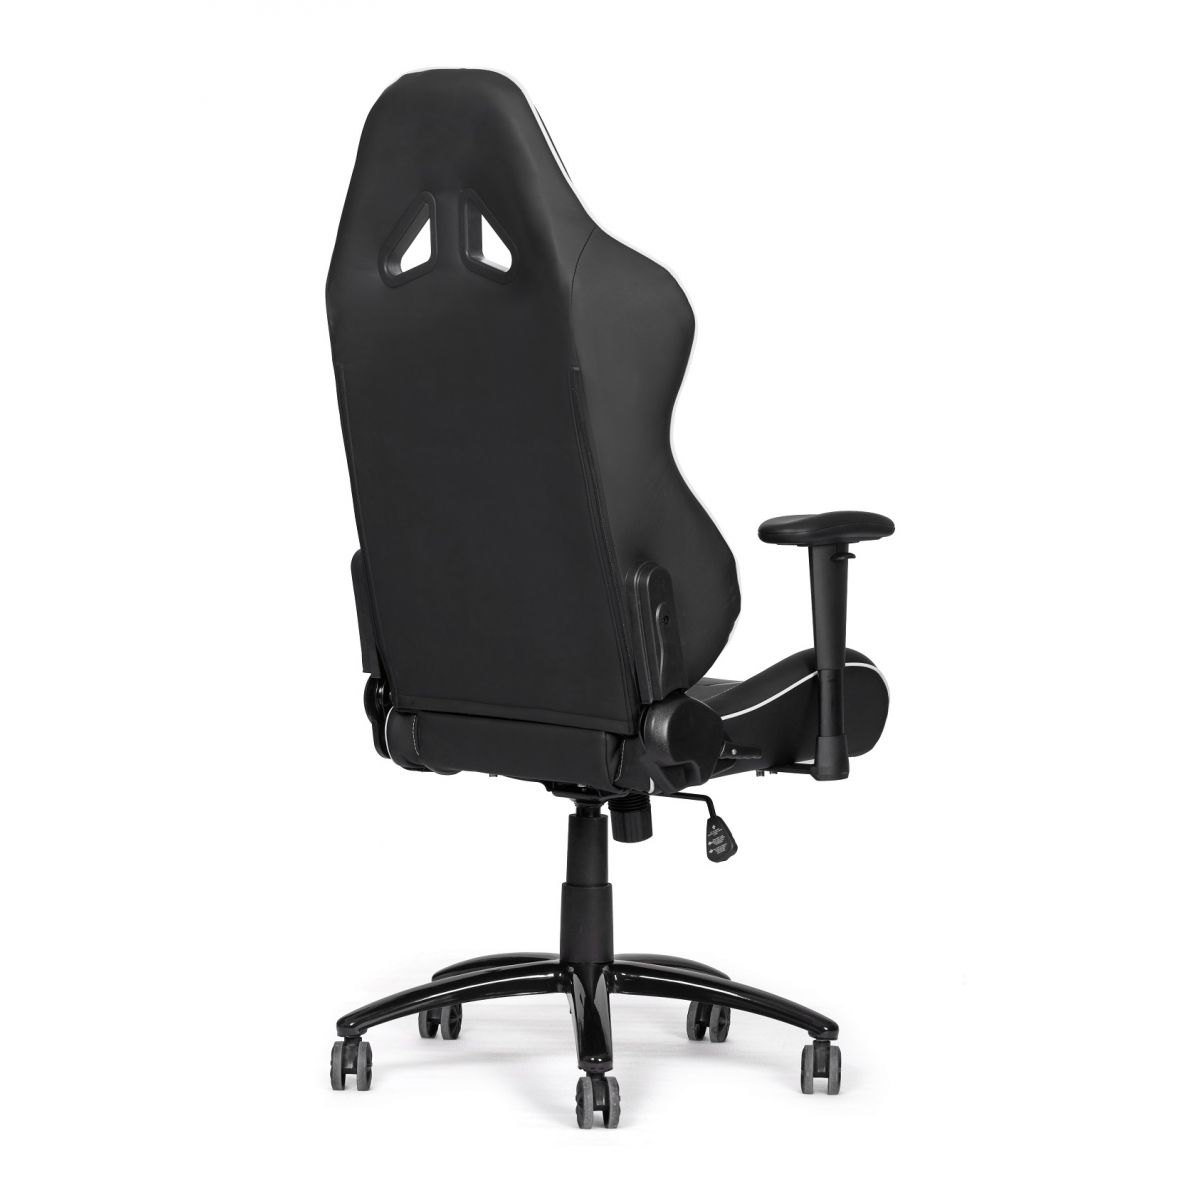 Cadeira AKRacing Octane Gaming White AK-OCTANE-WT - AKRacing